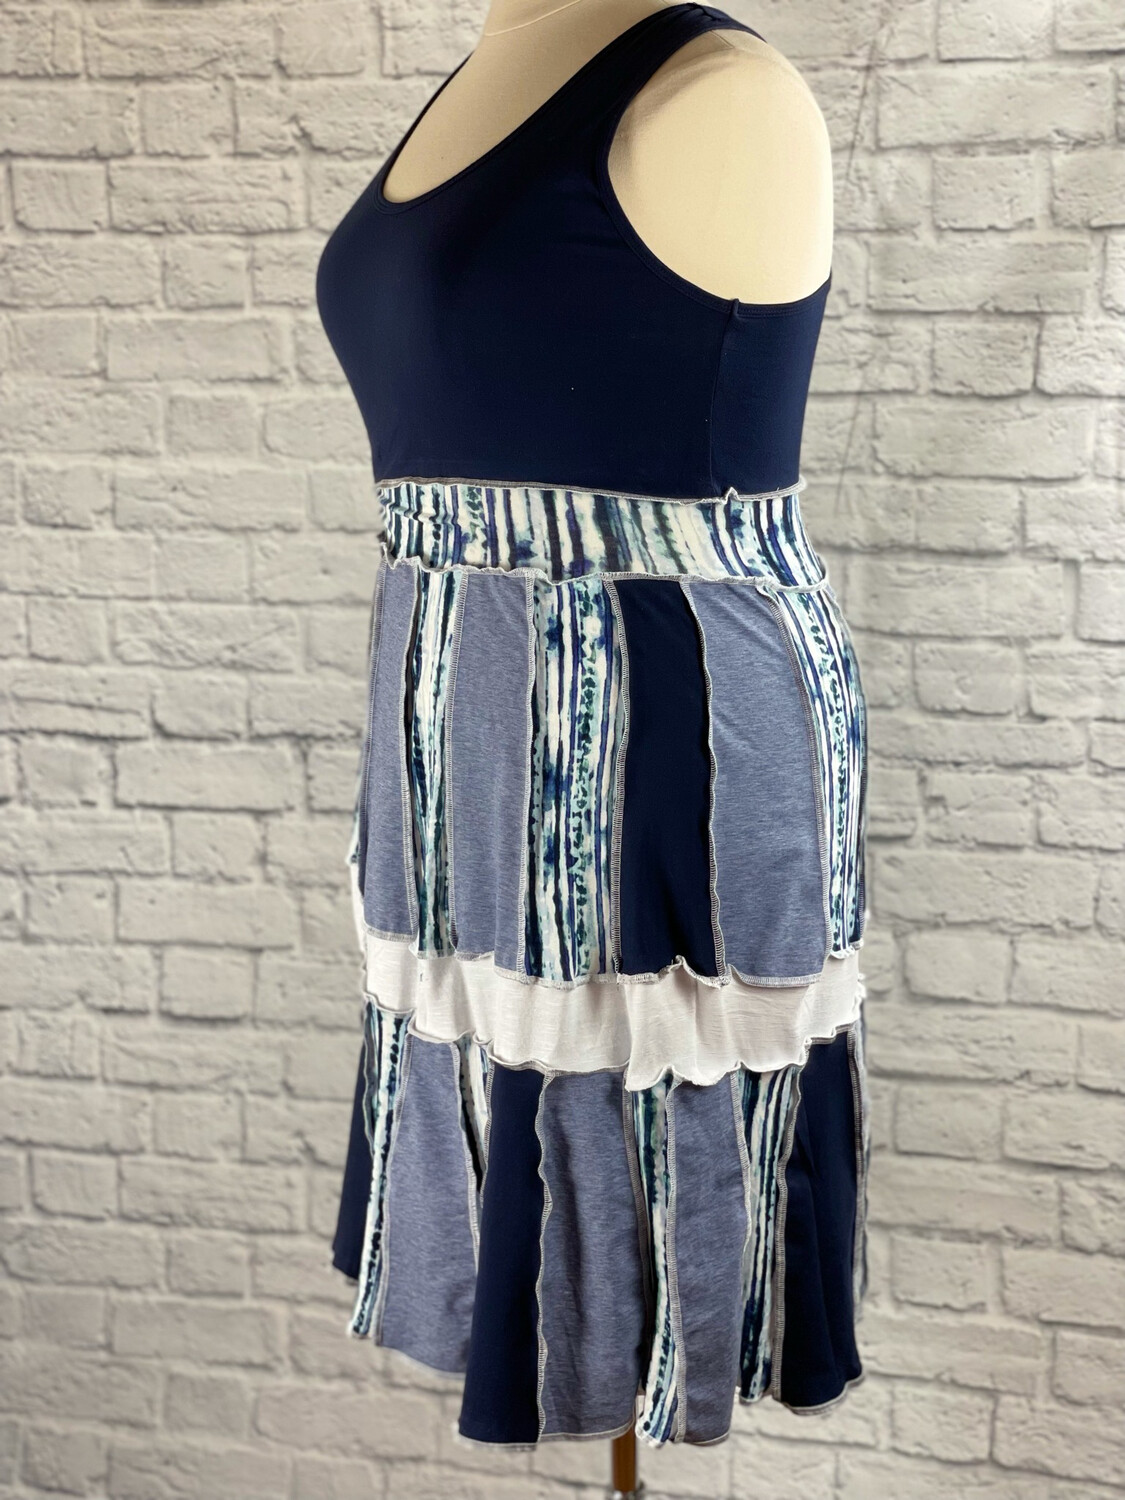 S Threads Upcycled Dress Patchwork Panel Cottage Style Size L/XL